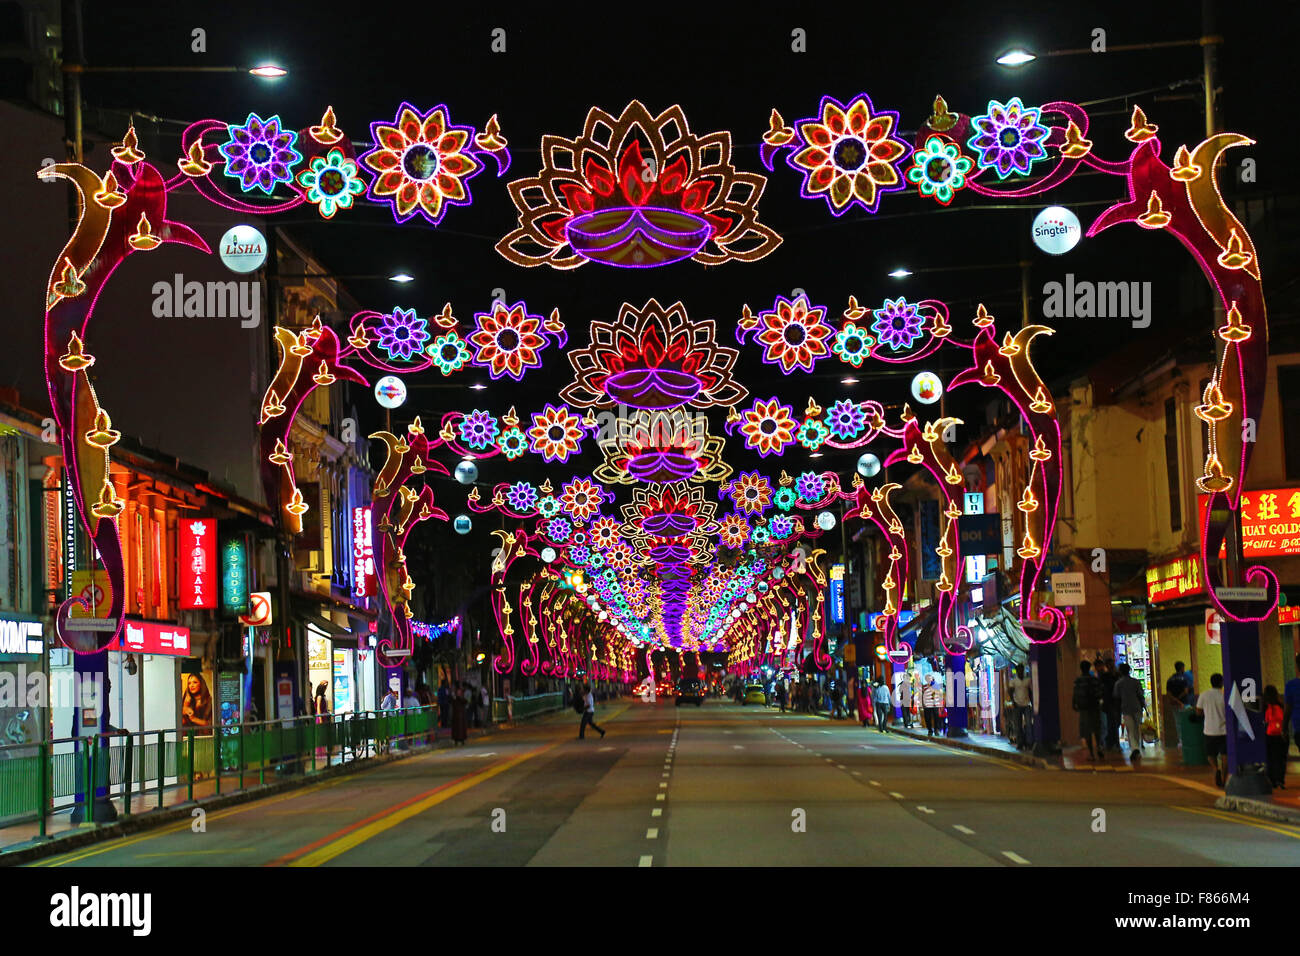 Street Lights For Diwali In Singapore Republic Of